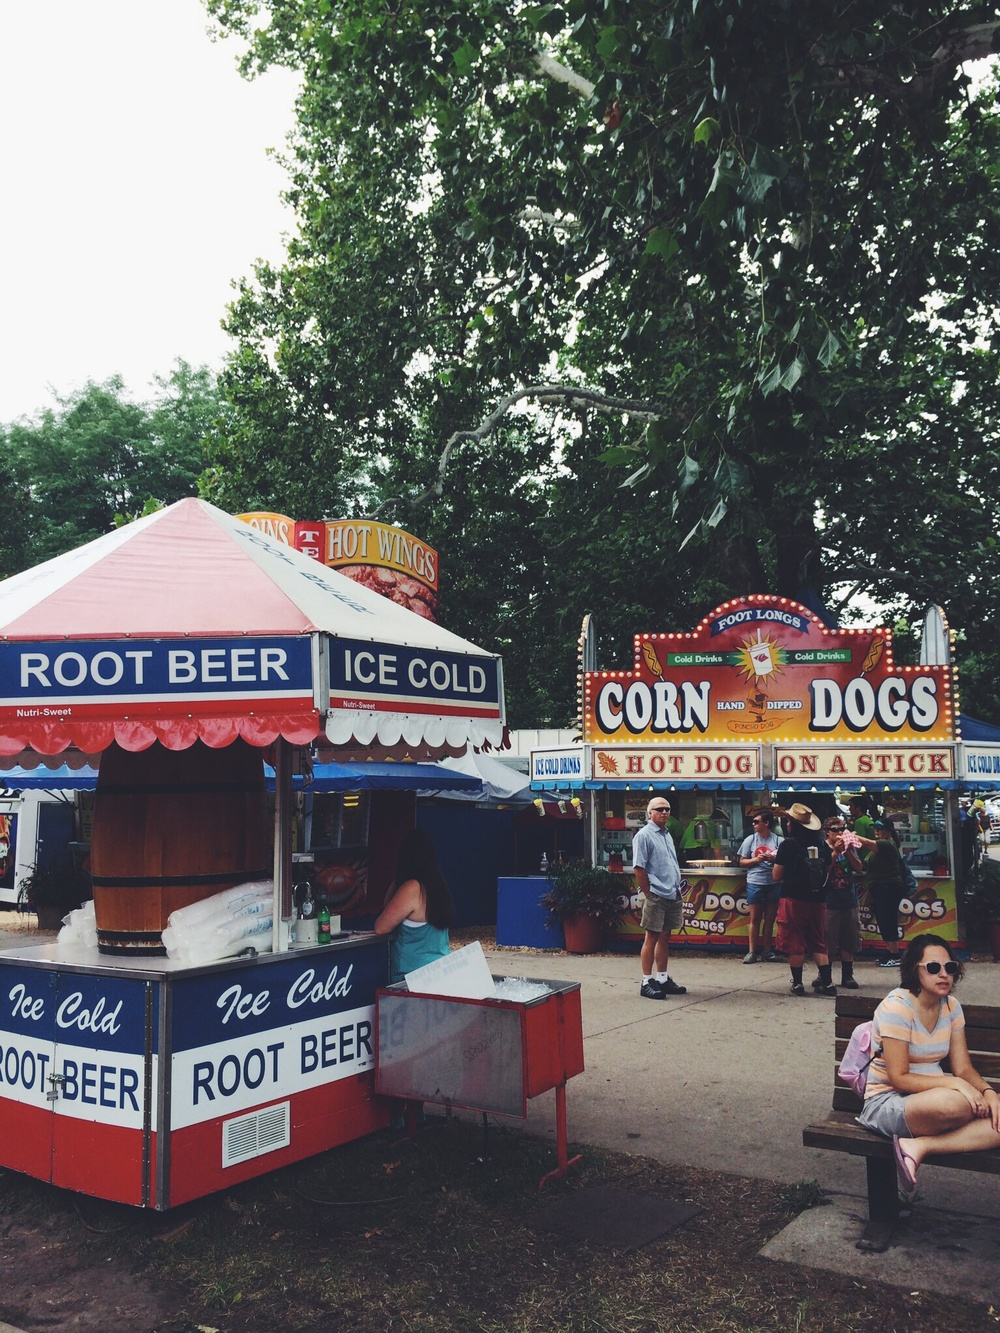 Corn dogs and root beer - the perfect combination!